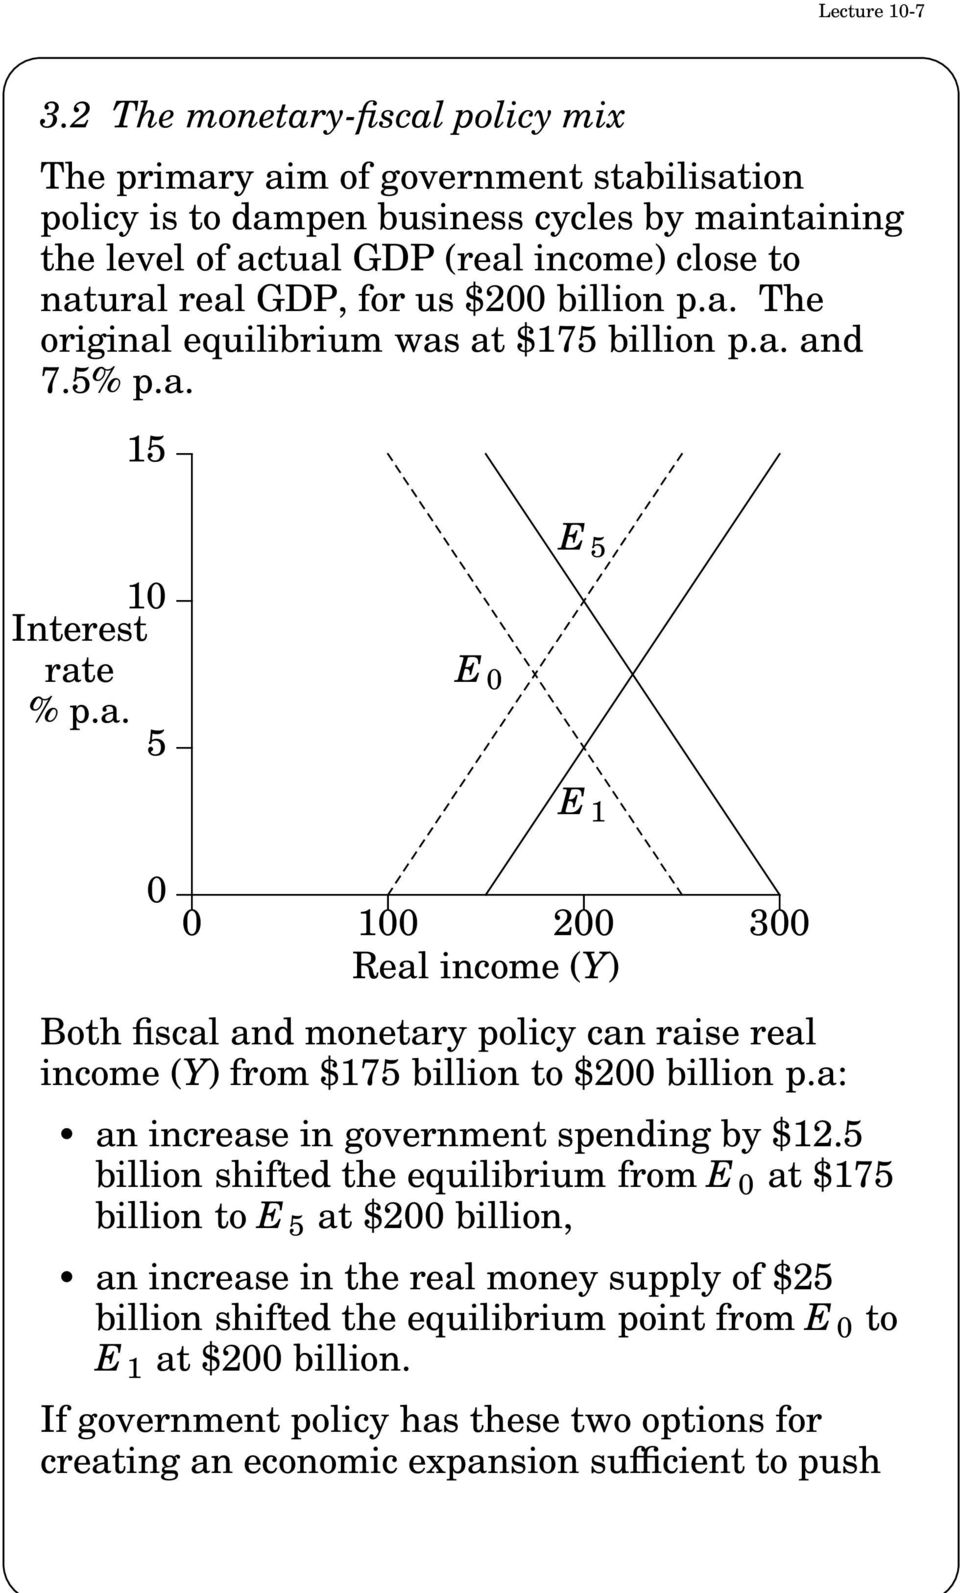 $200 billion p.a. The original equilibrium was at $175 billion p.a. and 7.5% p.a. 15 10 Interest rate % p.a. 5 E 0 E 5 E 1 0 0 100 200 300 Real income (Y) Both fiscal and monetary policy can raise real income (Y) from $175 billion to $200 billion p.